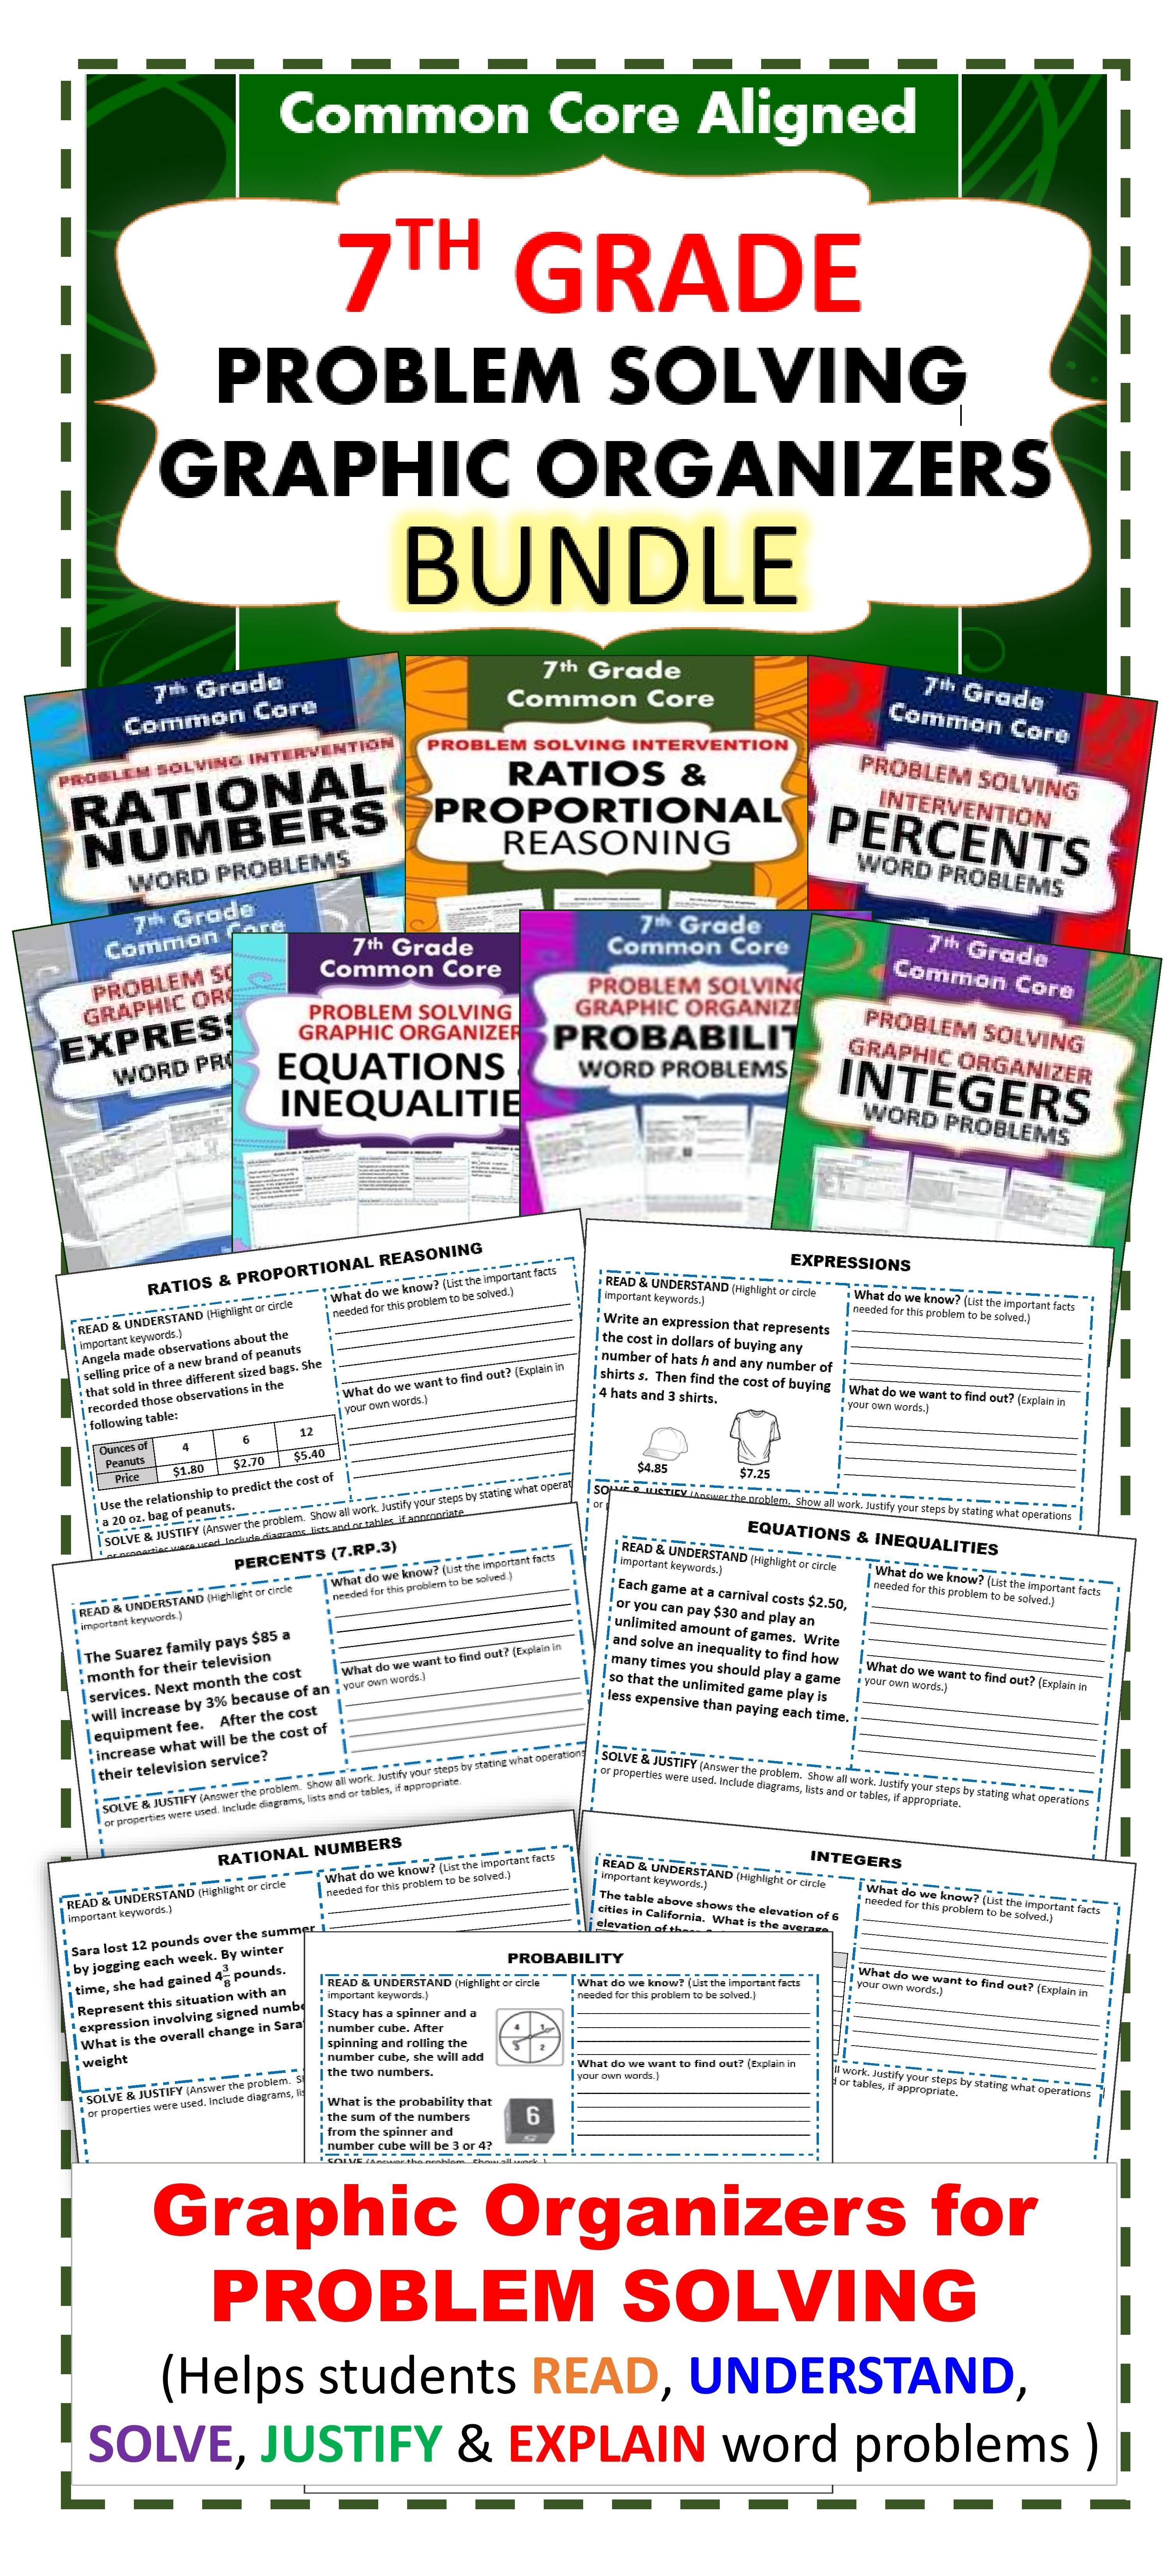 7th Grade Math Word Problems Graphic Organizer Bundle